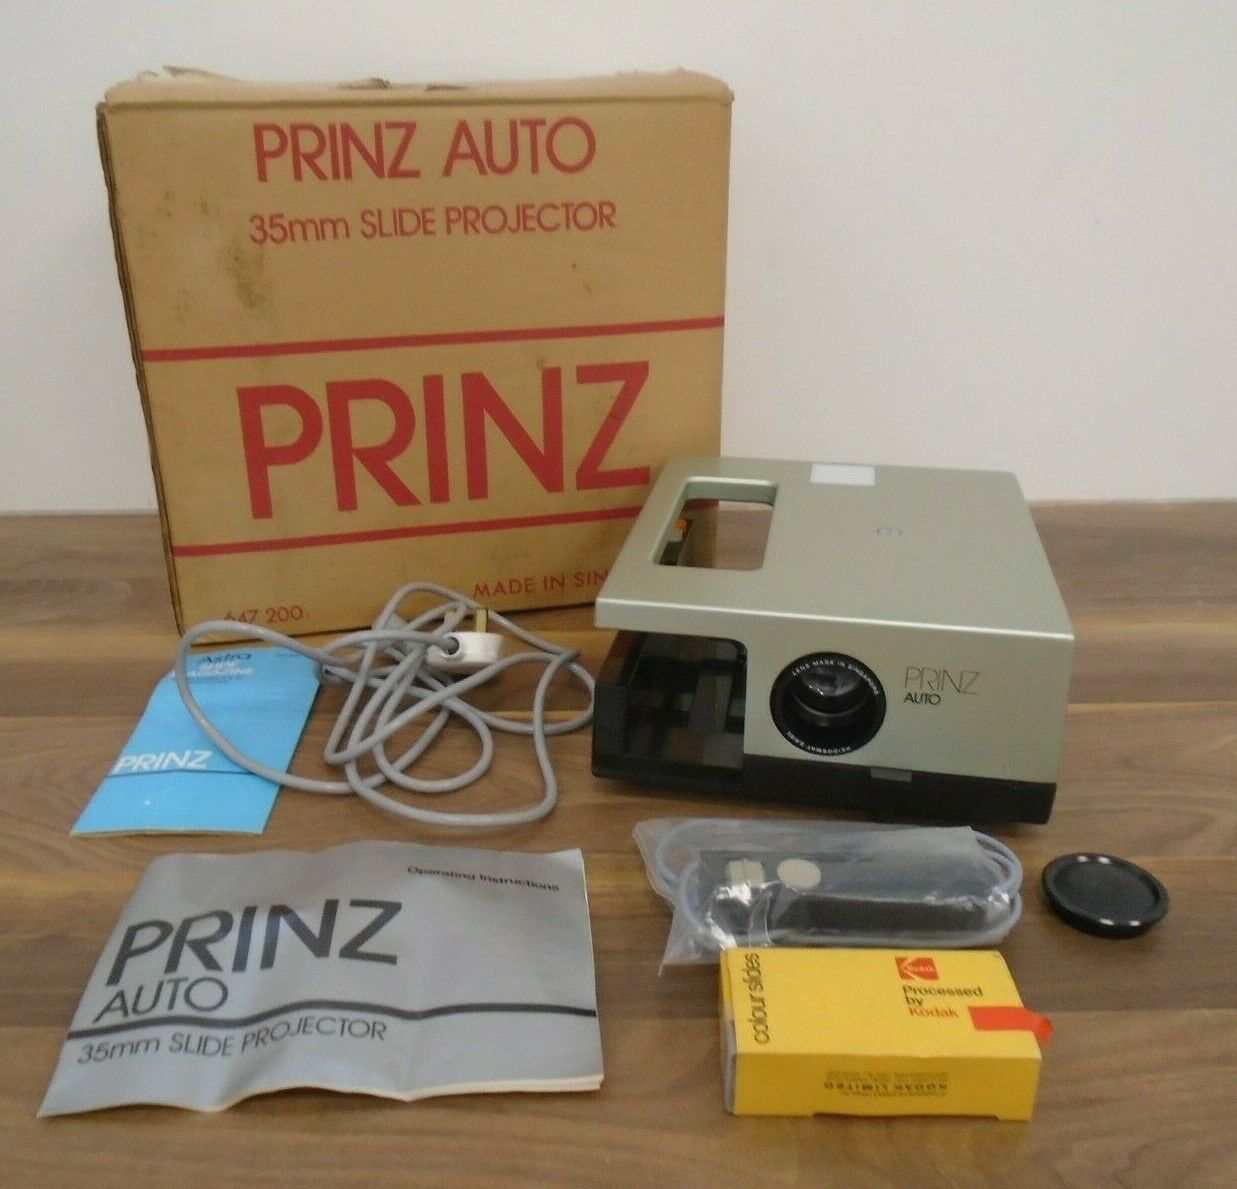 Prinz Auto 35mm Slide Projector Green Instructions Cables Boxed Tested Working